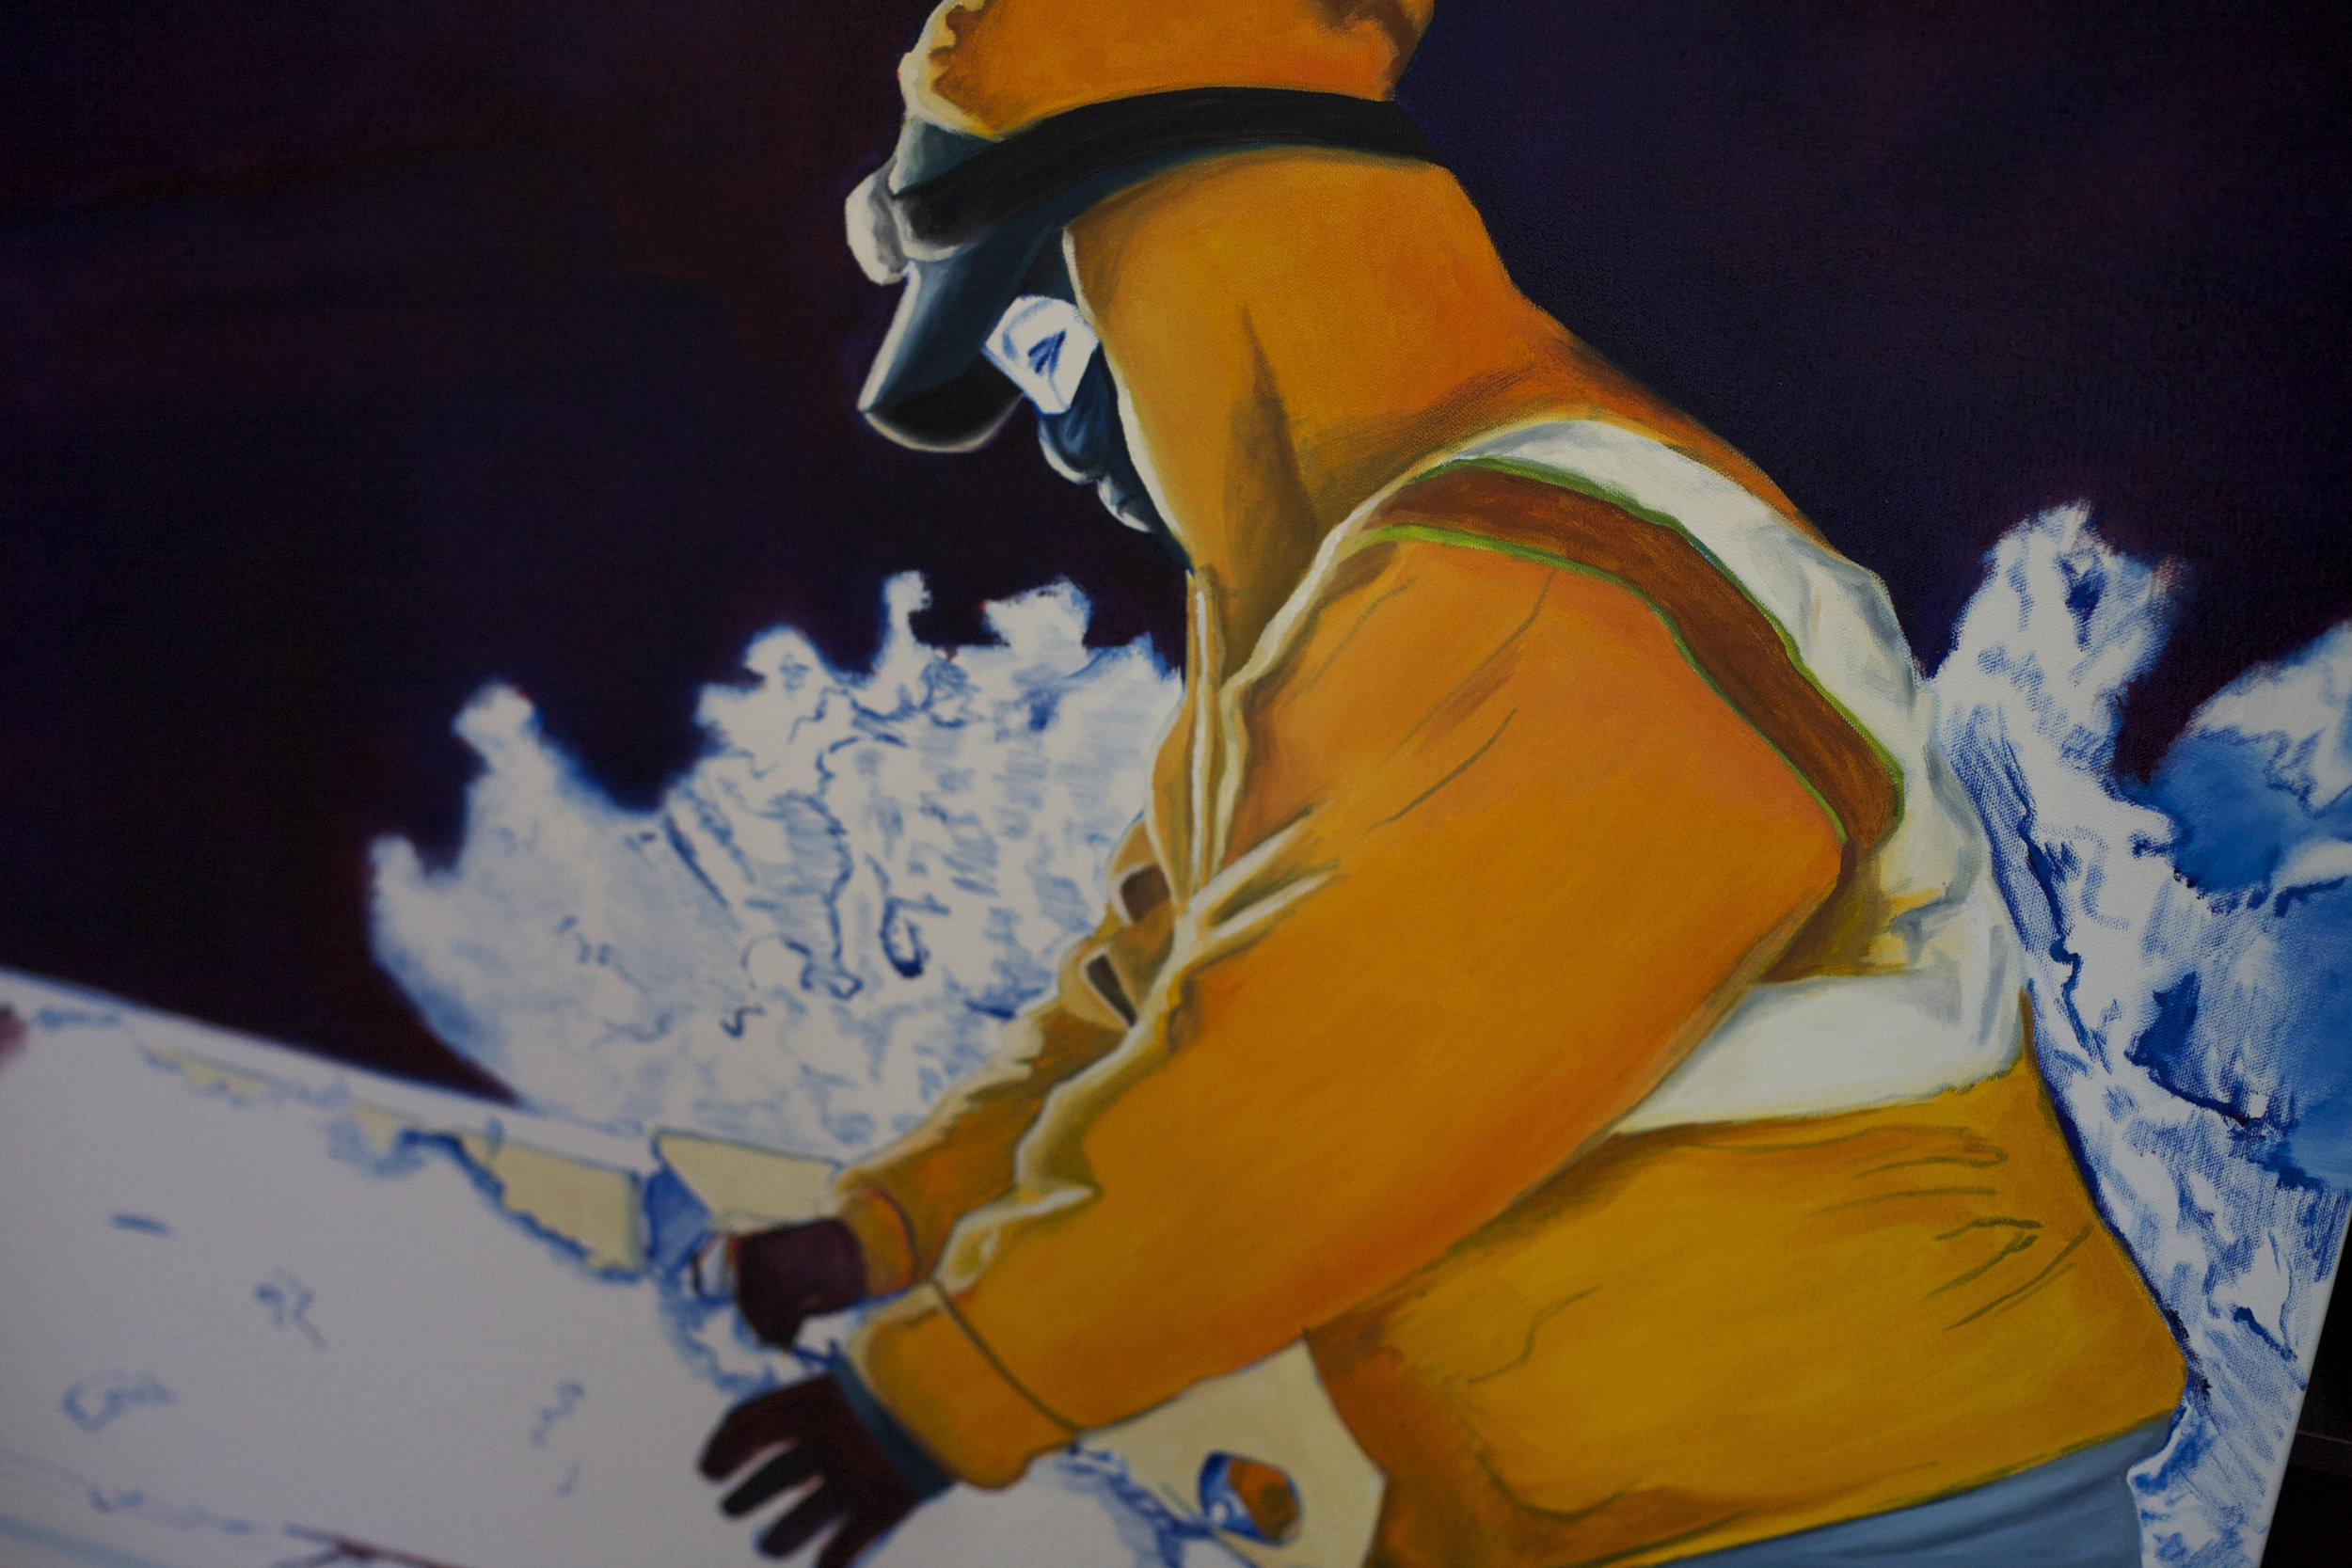 In one of Correa's oil paintings, a woman harvesting grapes at night ties a bandana around her mouth and nose to protect herself from the smoke permeating the fields.   Rachael Bongiorno for NPR